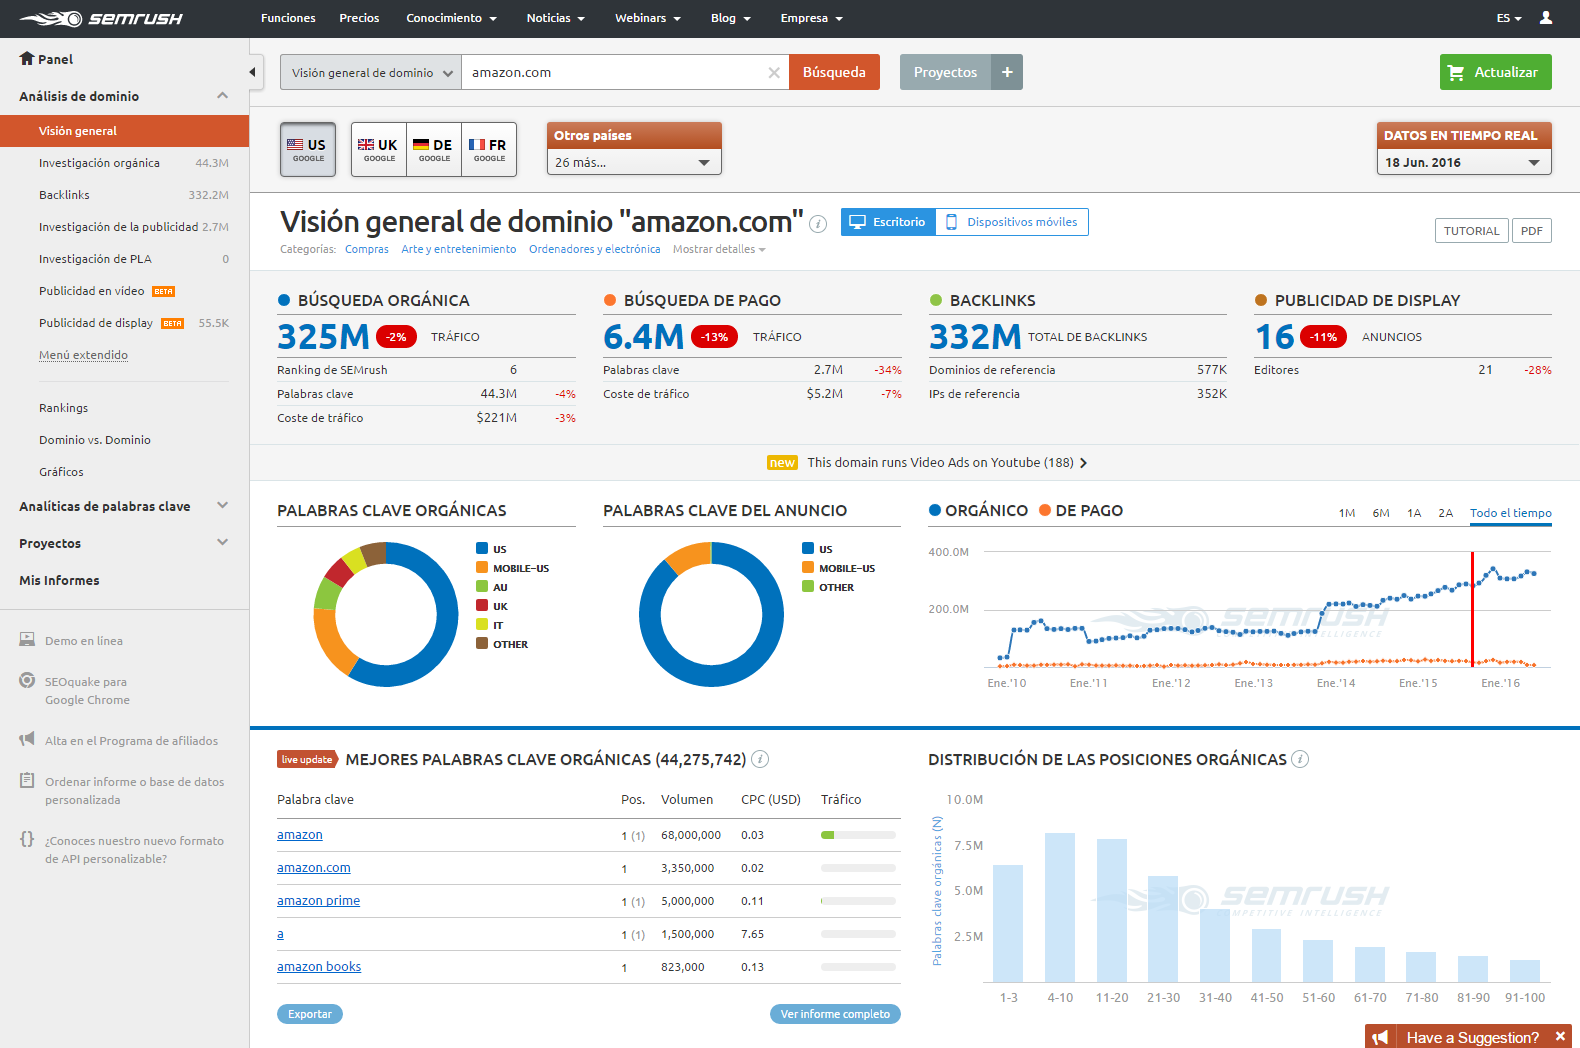 analisis de dominio semrush